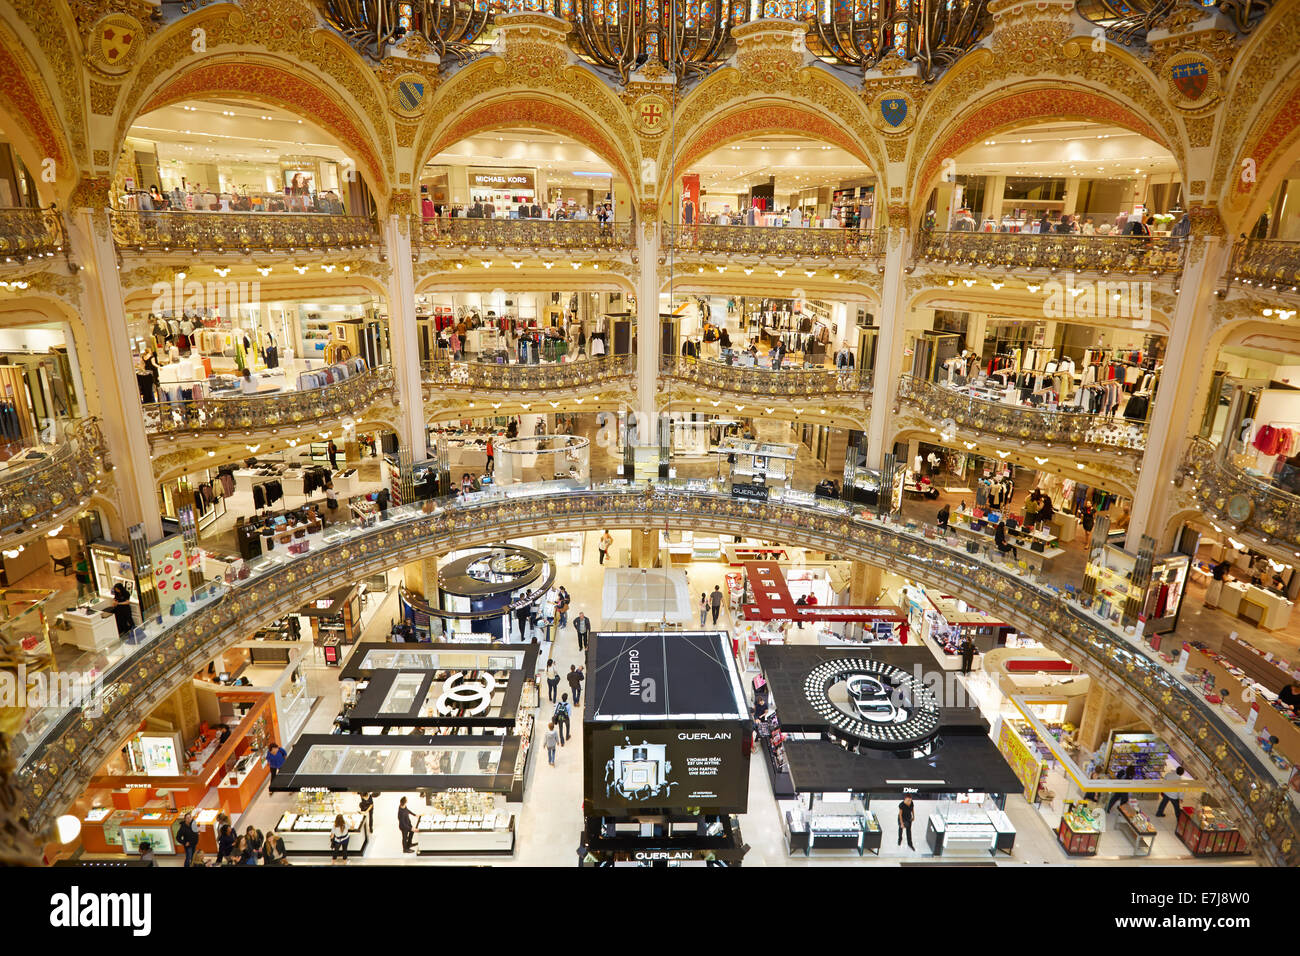 Galeries Lafayette Interior In Paris Stock Photo 73546172